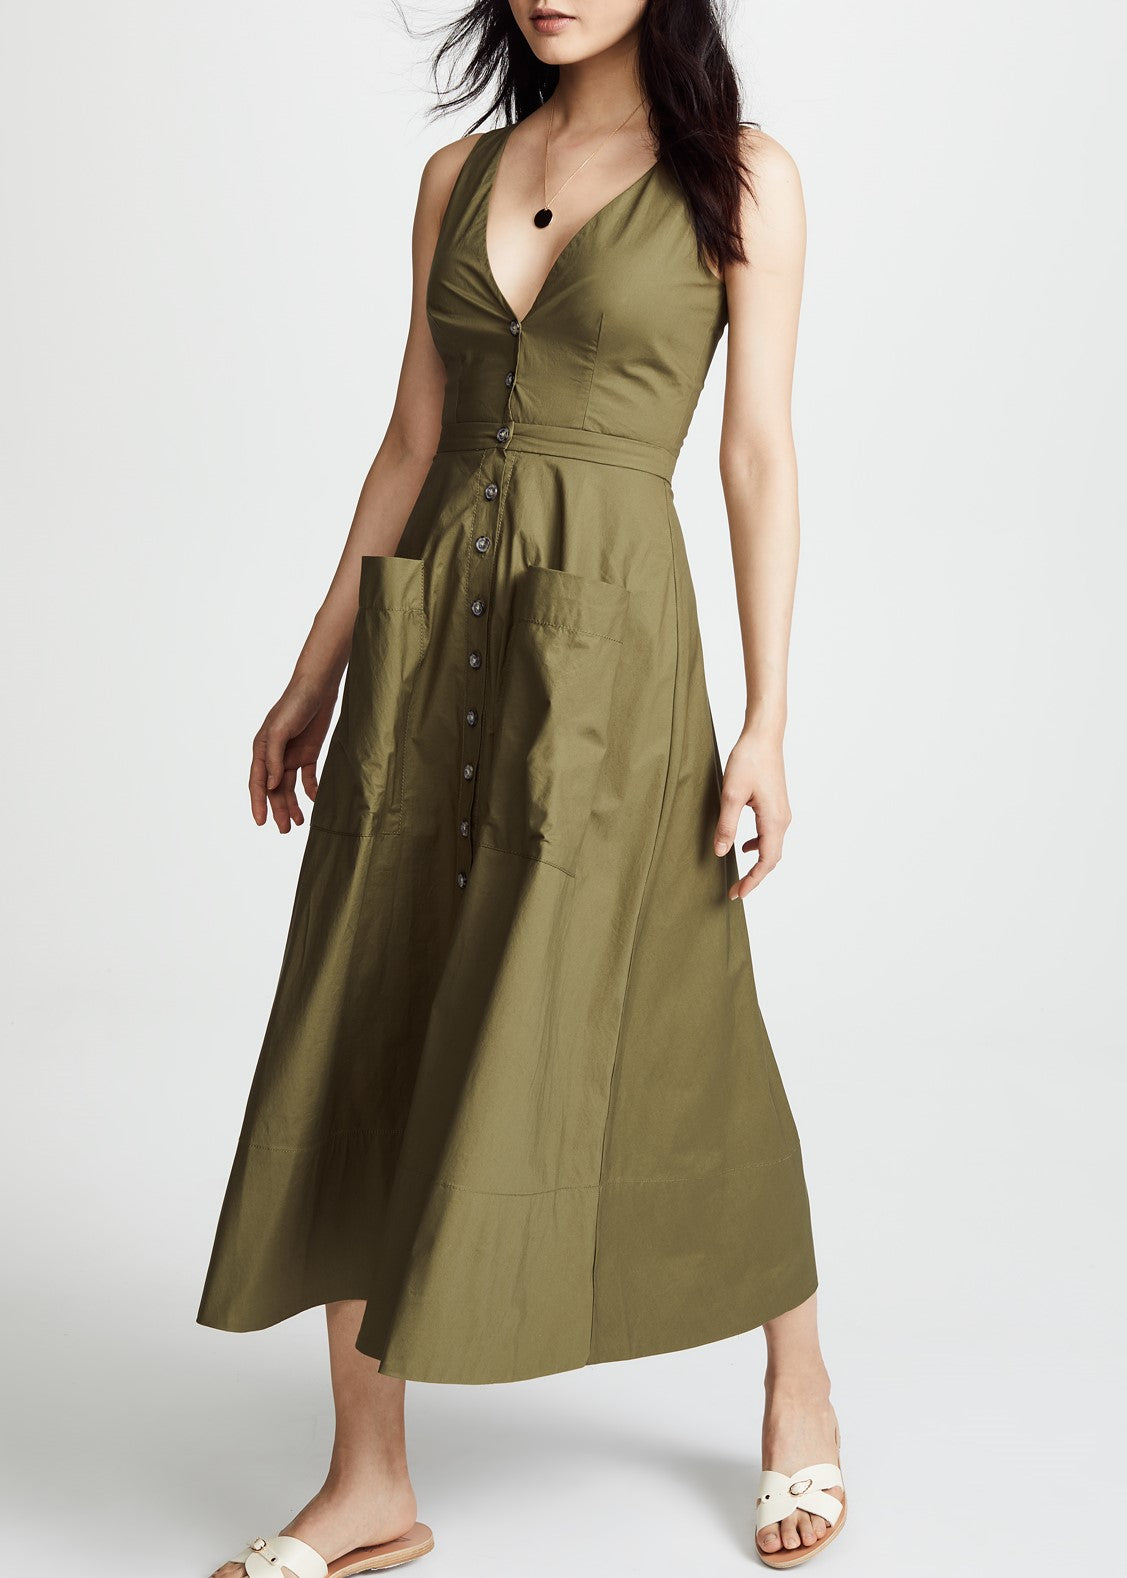 Saloni Zoe cutout dress in military green